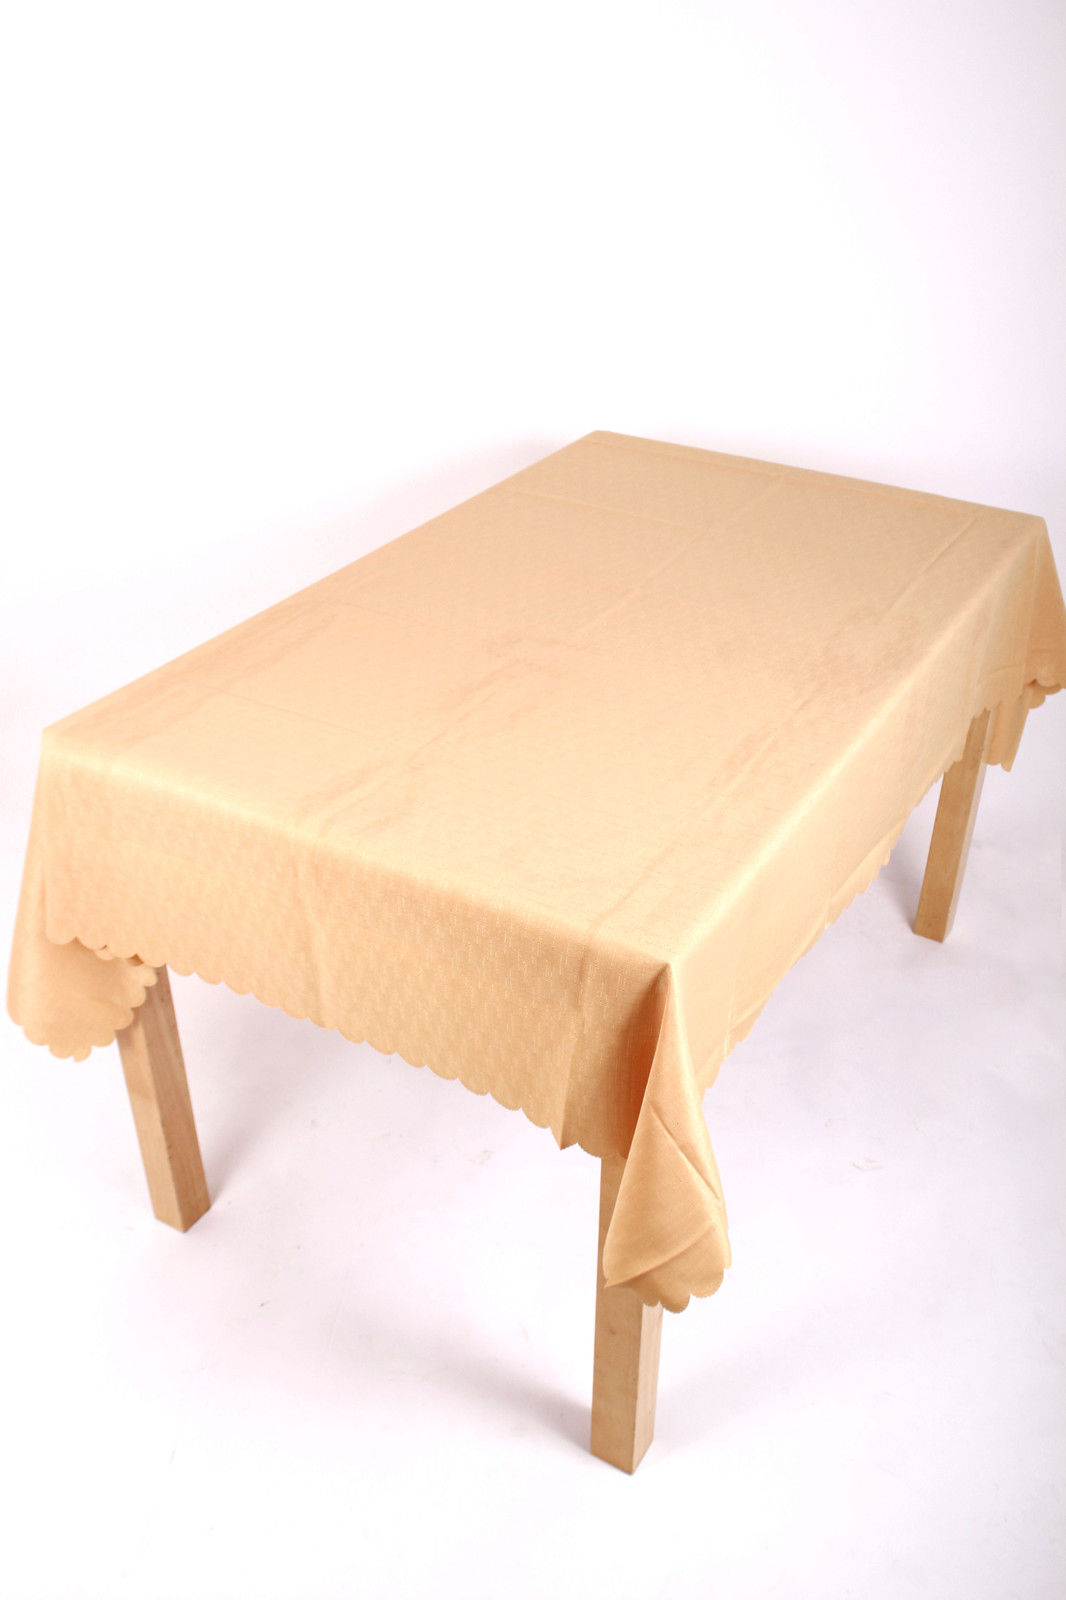 Shell Tablecloth Gold 137x229cm Oval